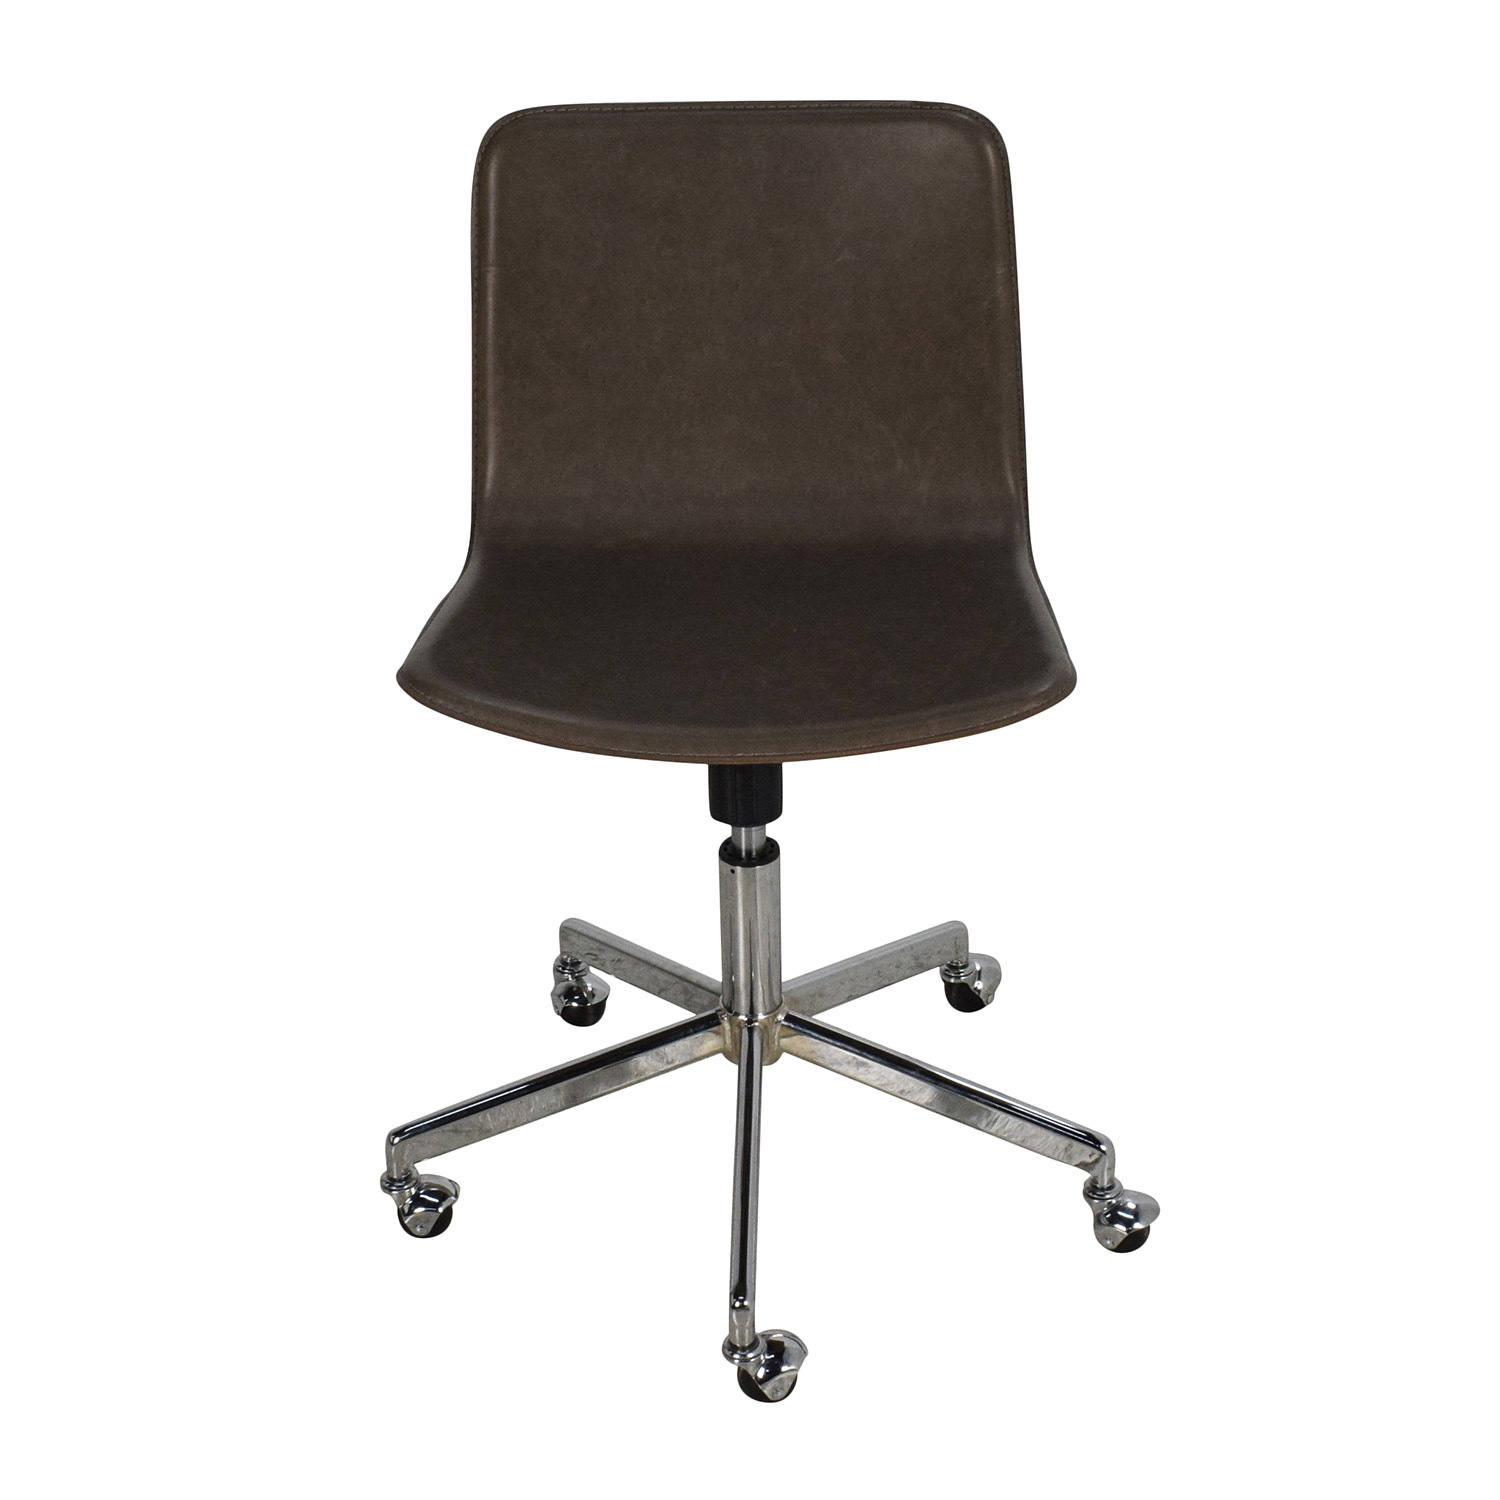 63% OFF Adjustable Black fice Arm Chair Chairs